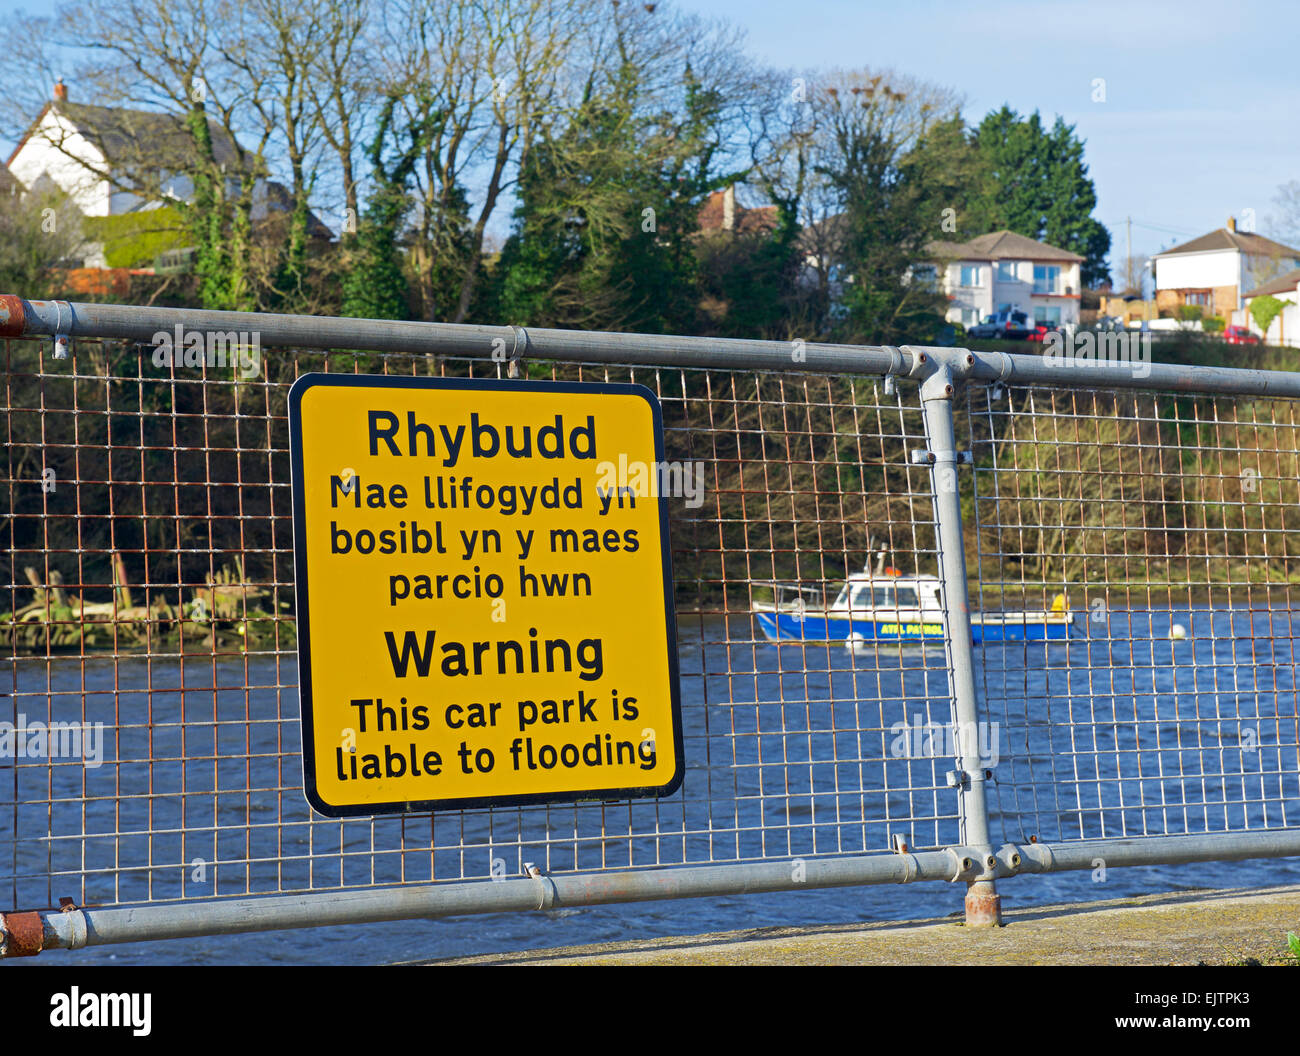 Sign warning that car park is liable to flooding, next to the River Teifi, Cardigan, Ceredigion wales uk Stock Photo